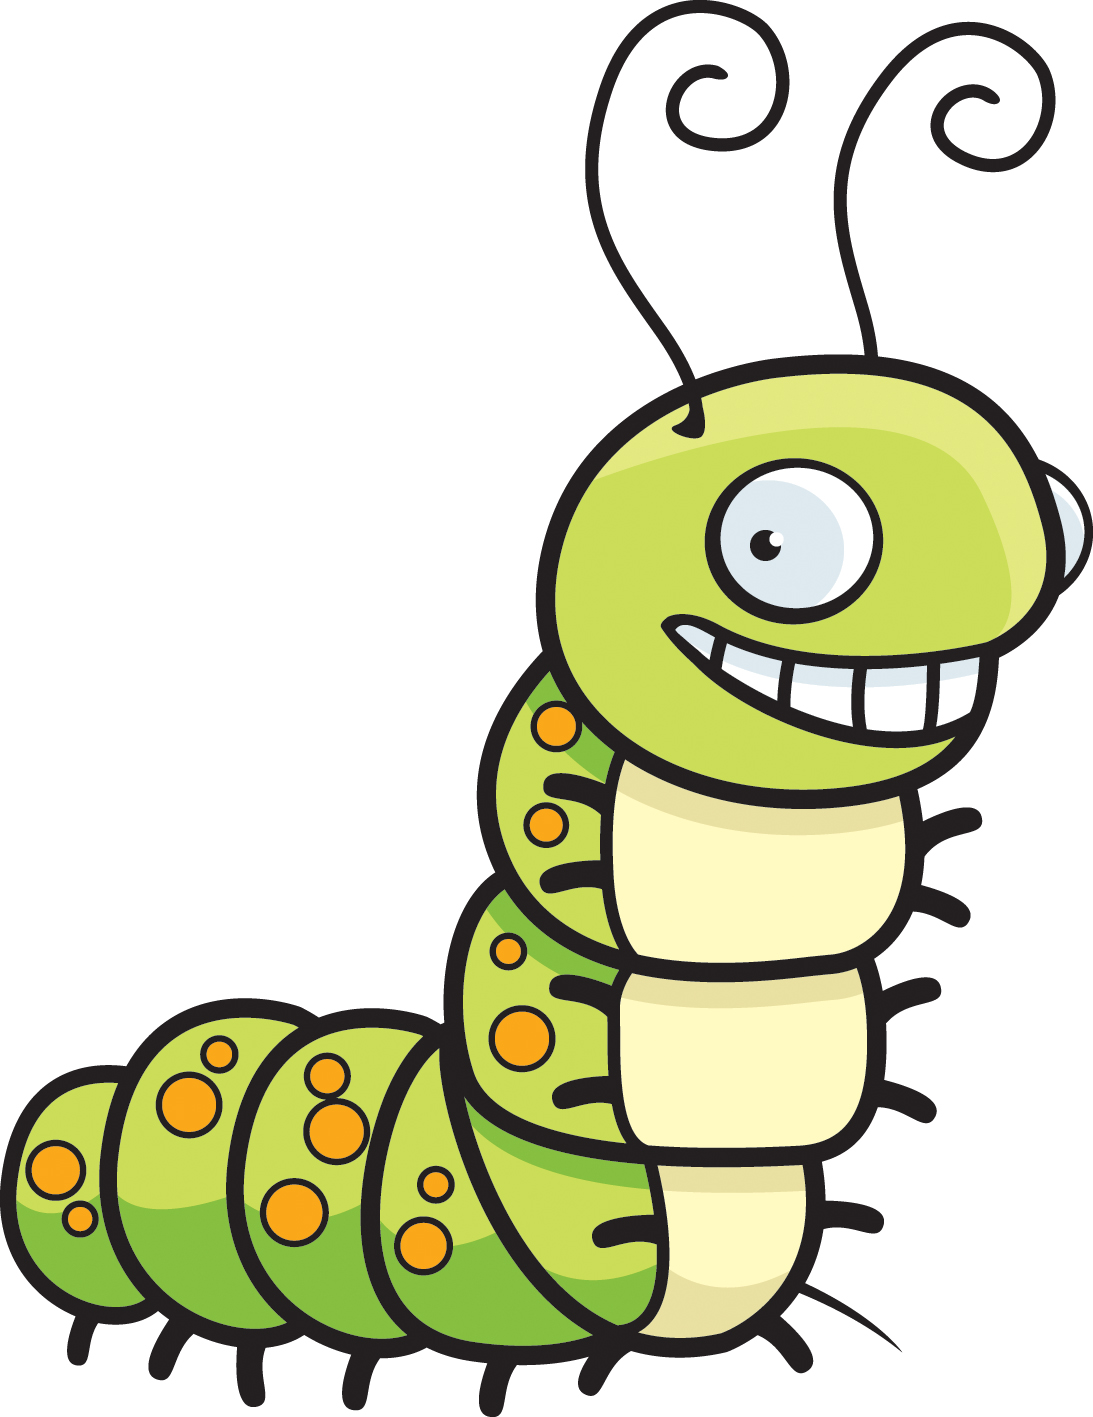 Caterpillar clipart poem. Miss cutts s poetry